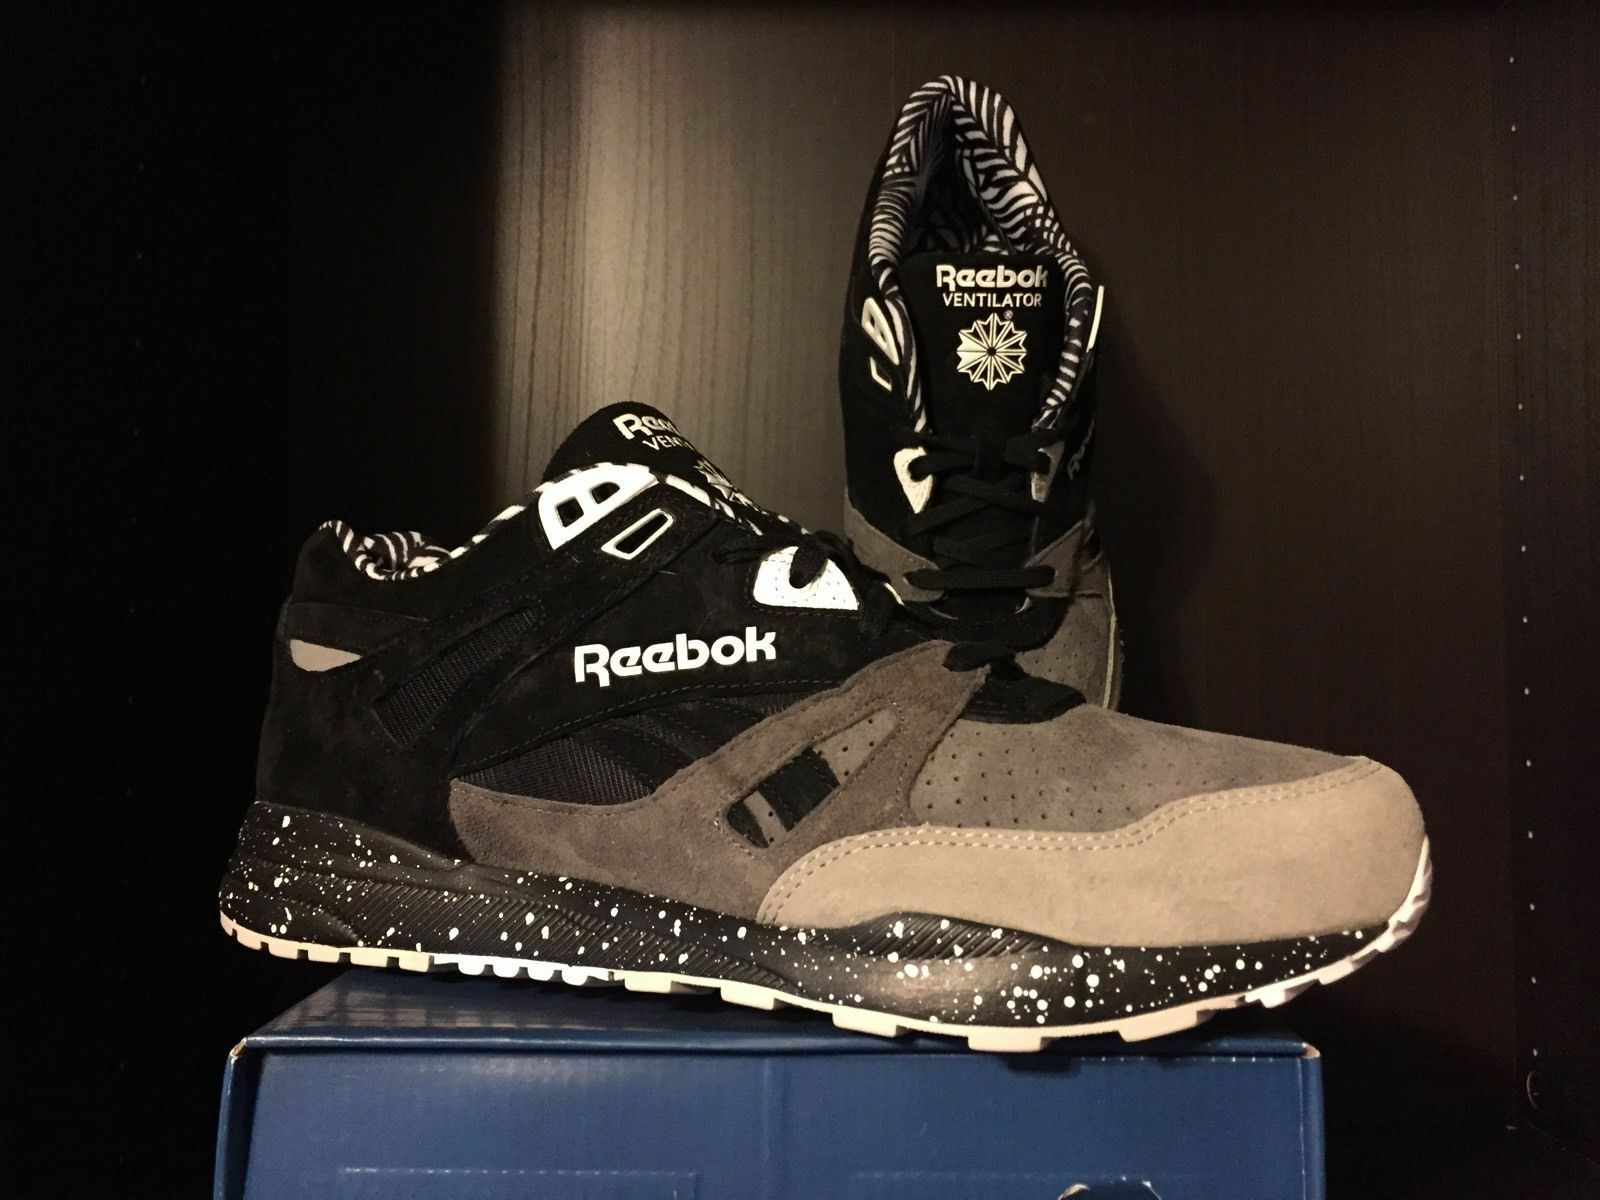 Mighty Healthy x x x Reebok Ventilator  High Tide  - Größe 12 a2f8f5